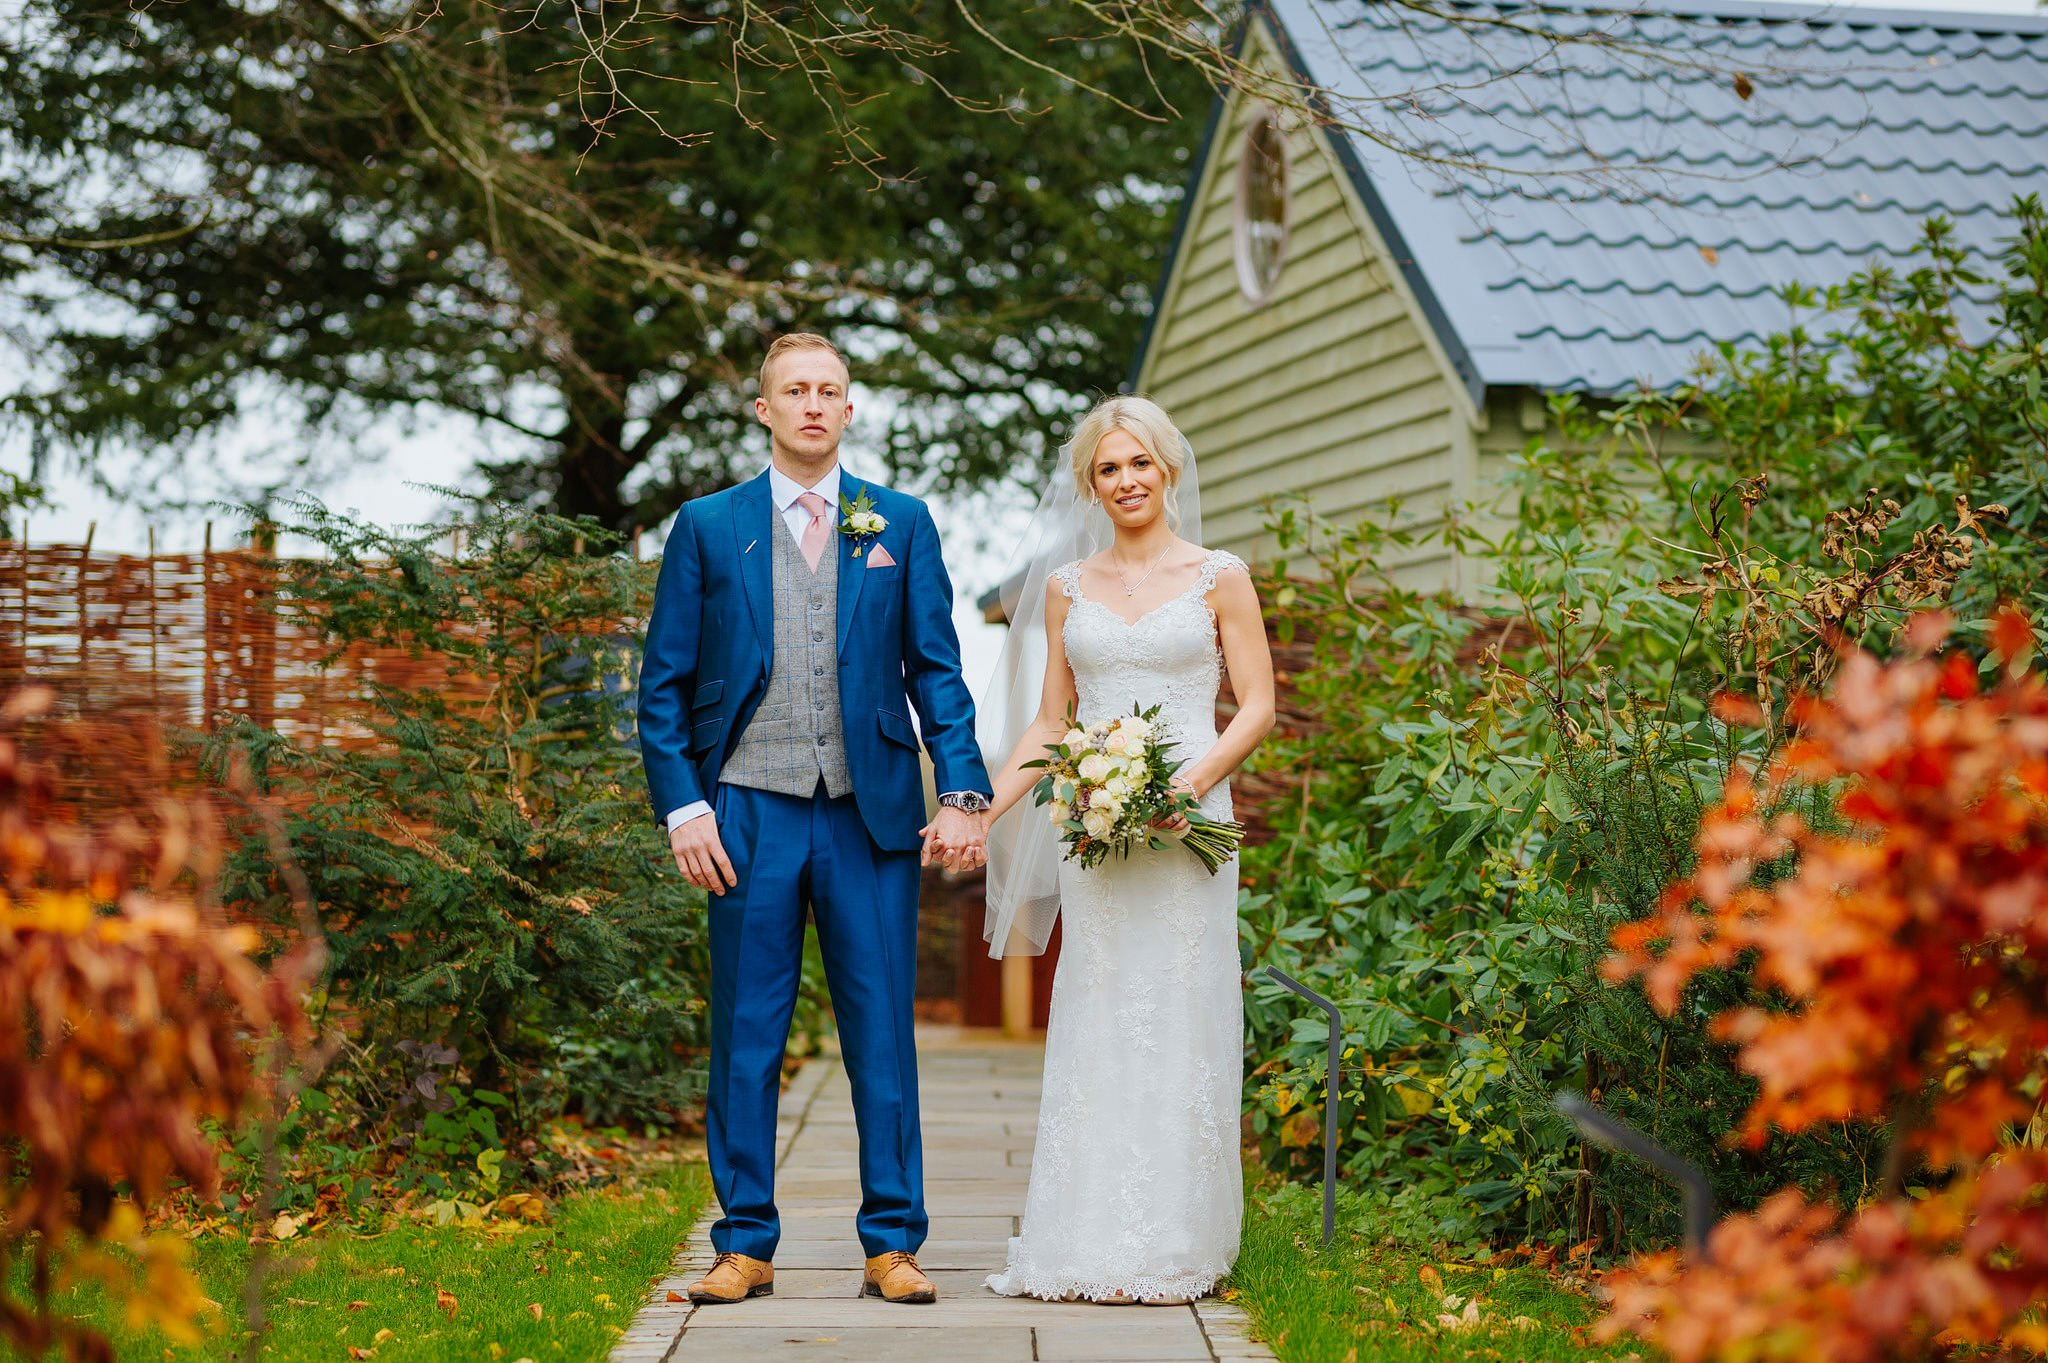 sigma 85mm art review wedding photography 118 - Sigma 85mm F1.4 ART review vs Wedding Photography